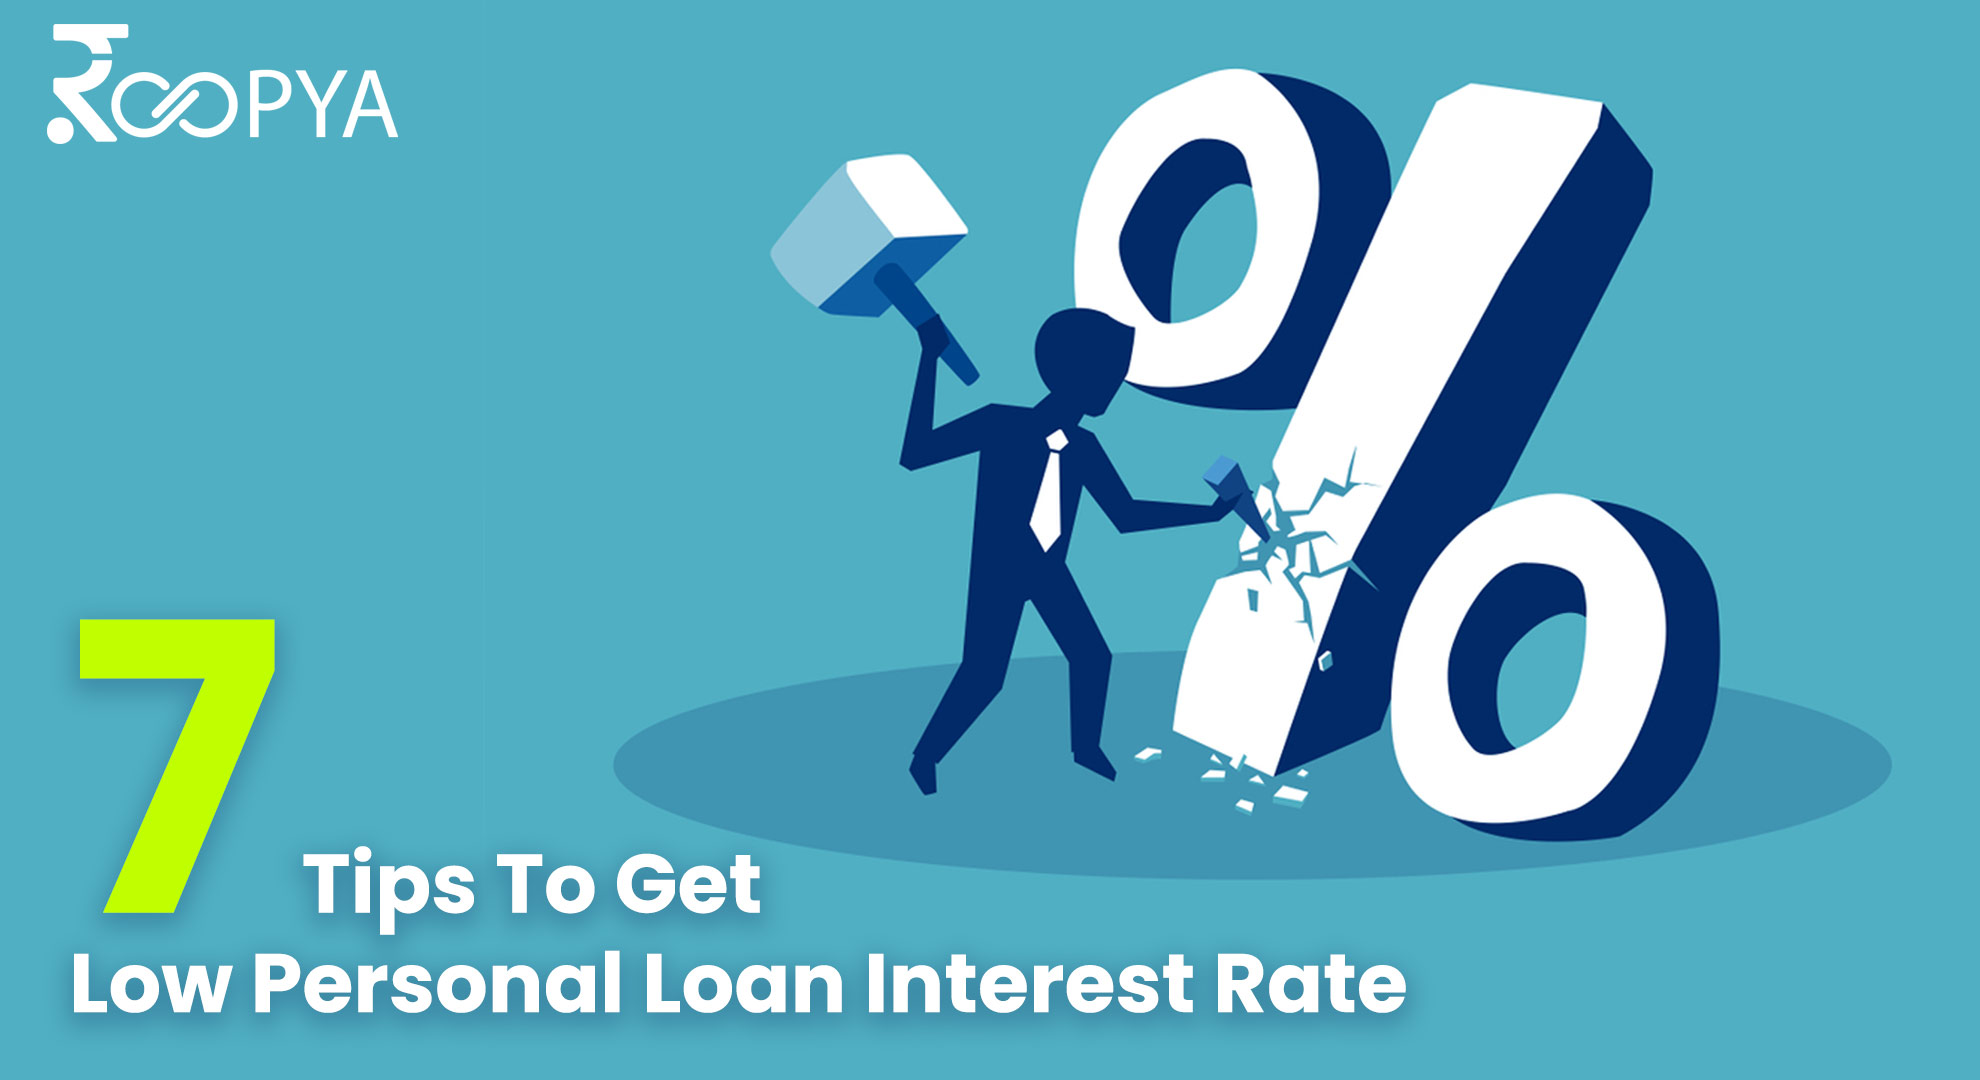 Low Personal Loan Interest Rate